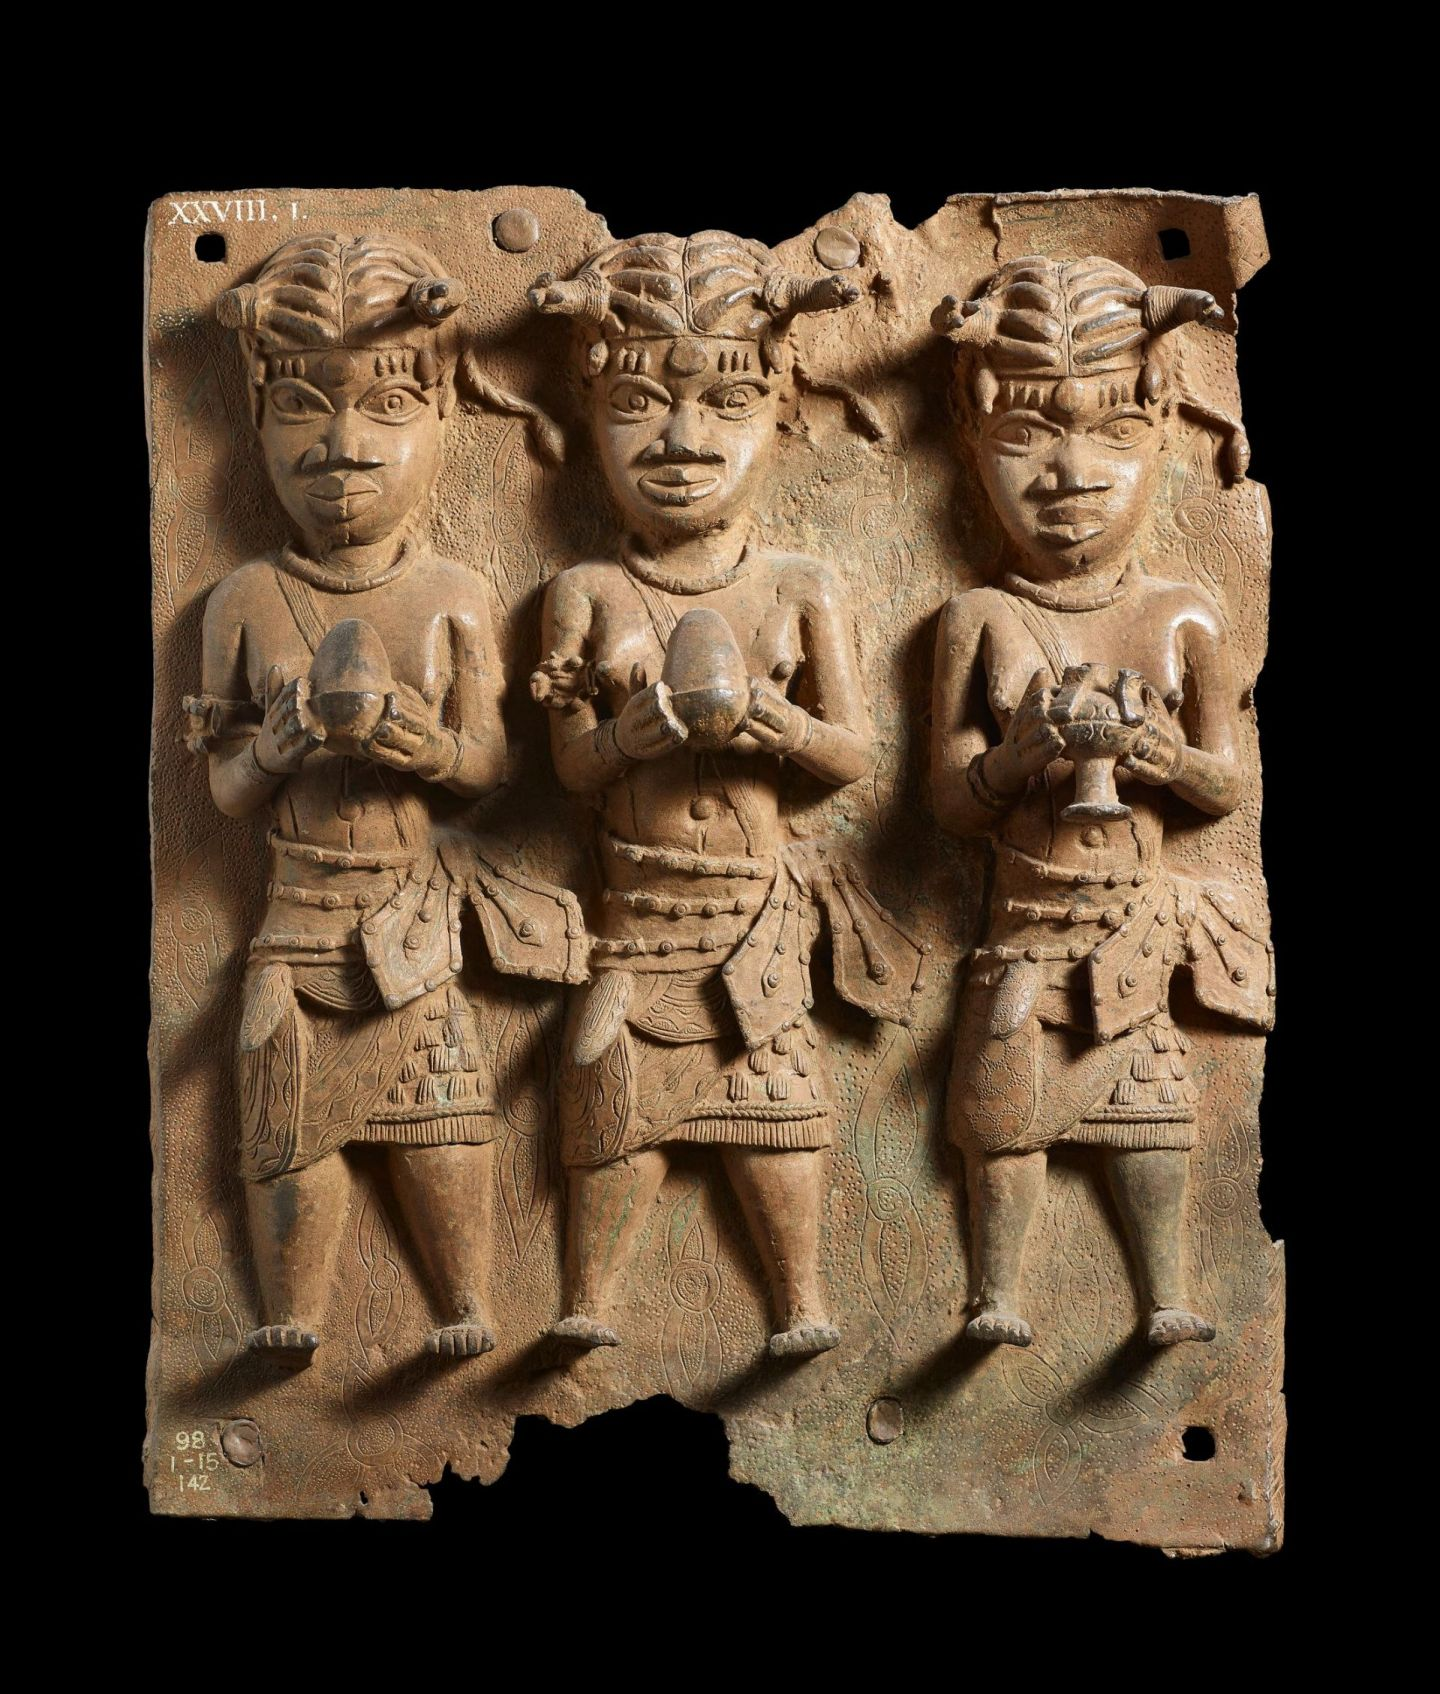 Benin bronze plaque at the British Museum London showing three figures holding bowls of food